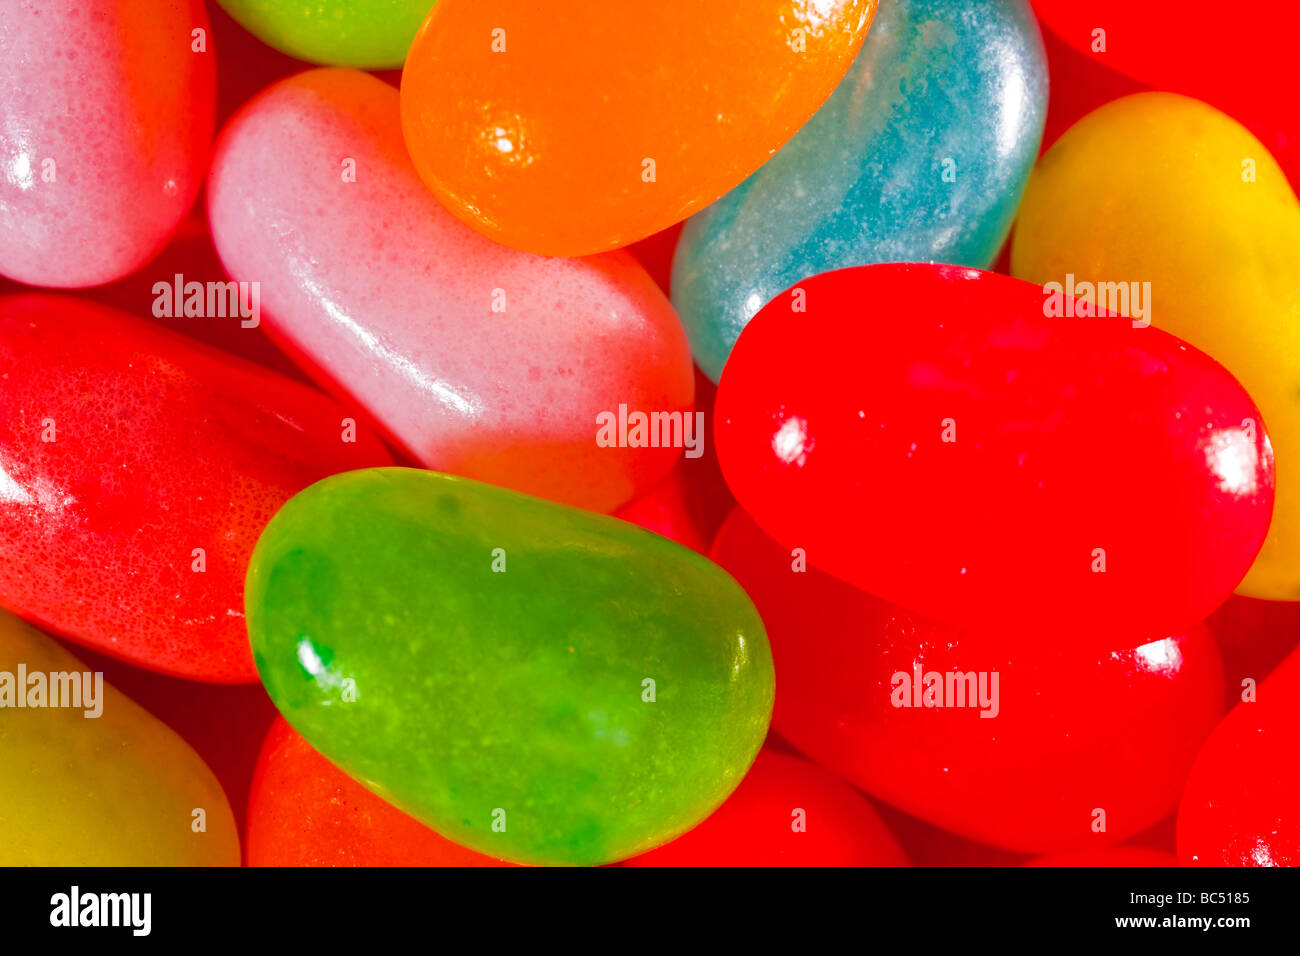 Multi colored jelly beans captured in 16 bit and provided in Adobe1998 color space to hold difficult color tones - Stock Image